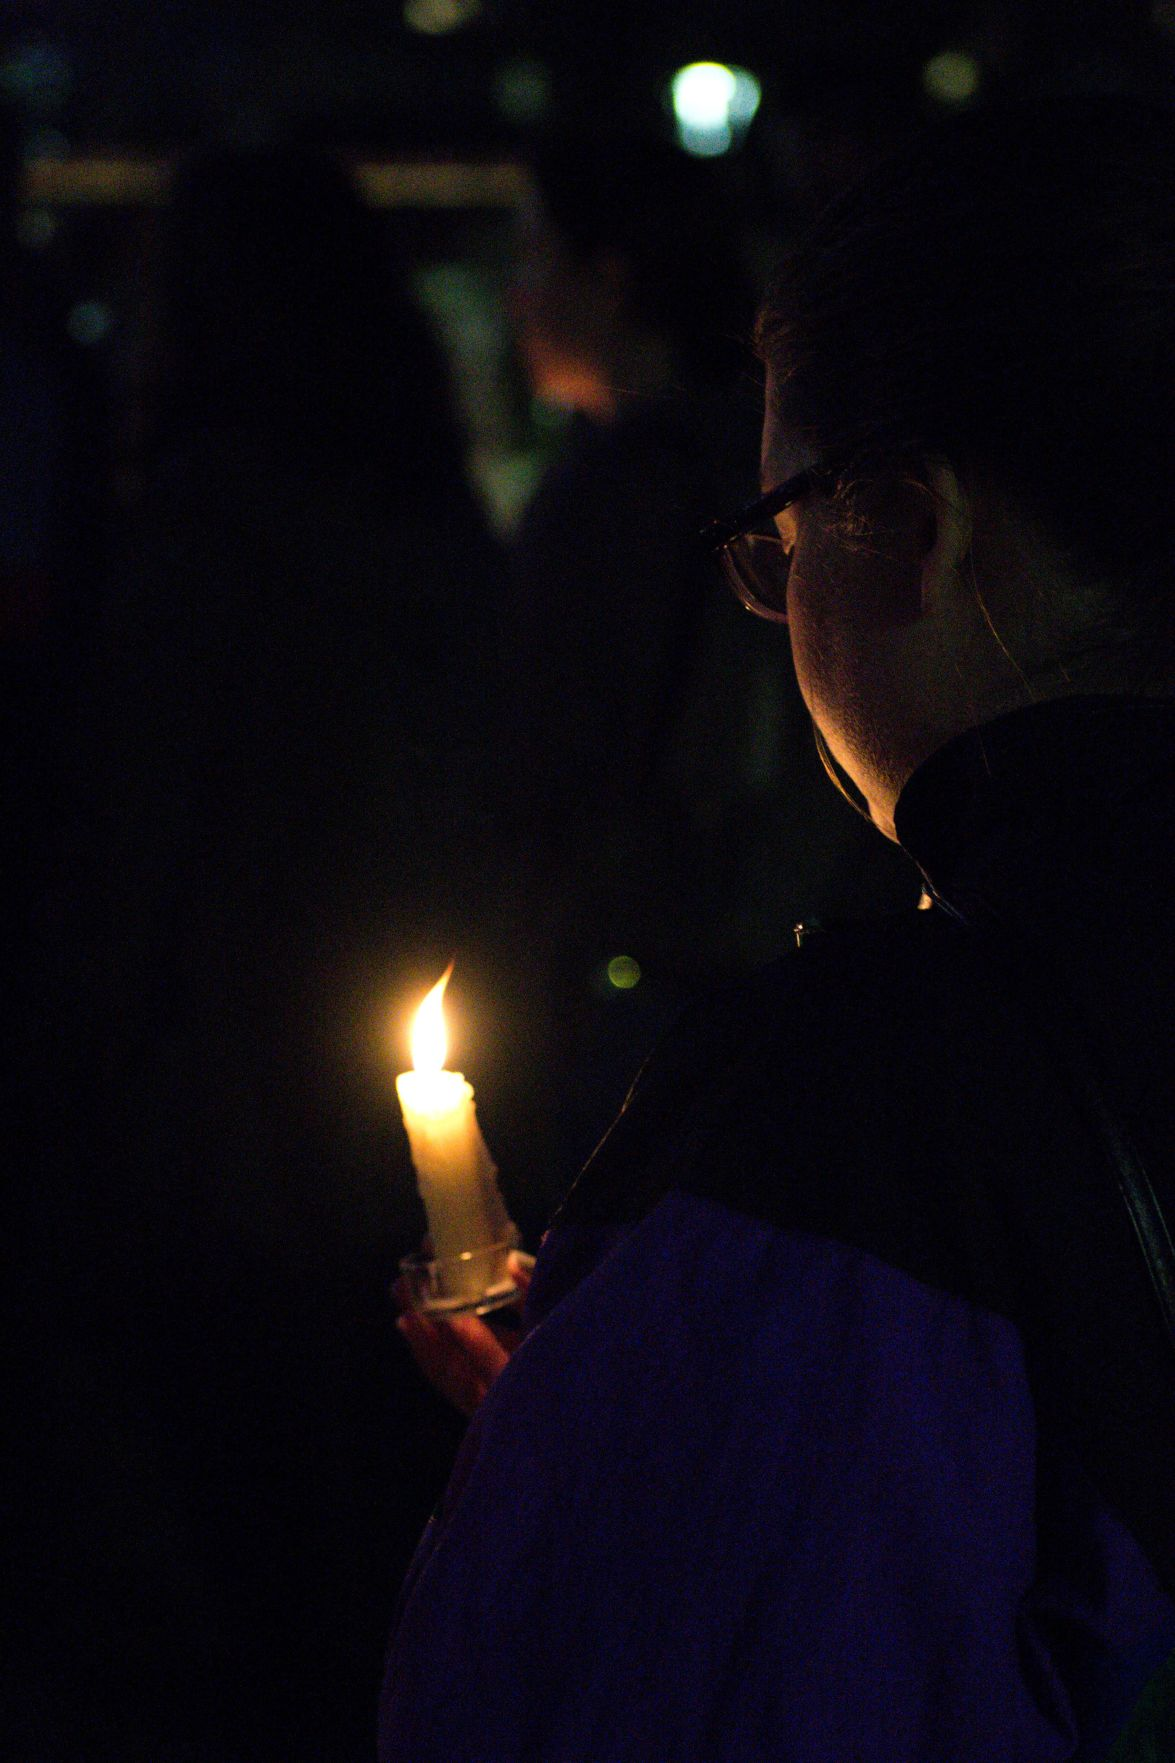 More than 100 WVU students, faculty and community members attended a candlelight vigil honoring the victims of the Christchurch tragedy this evening.